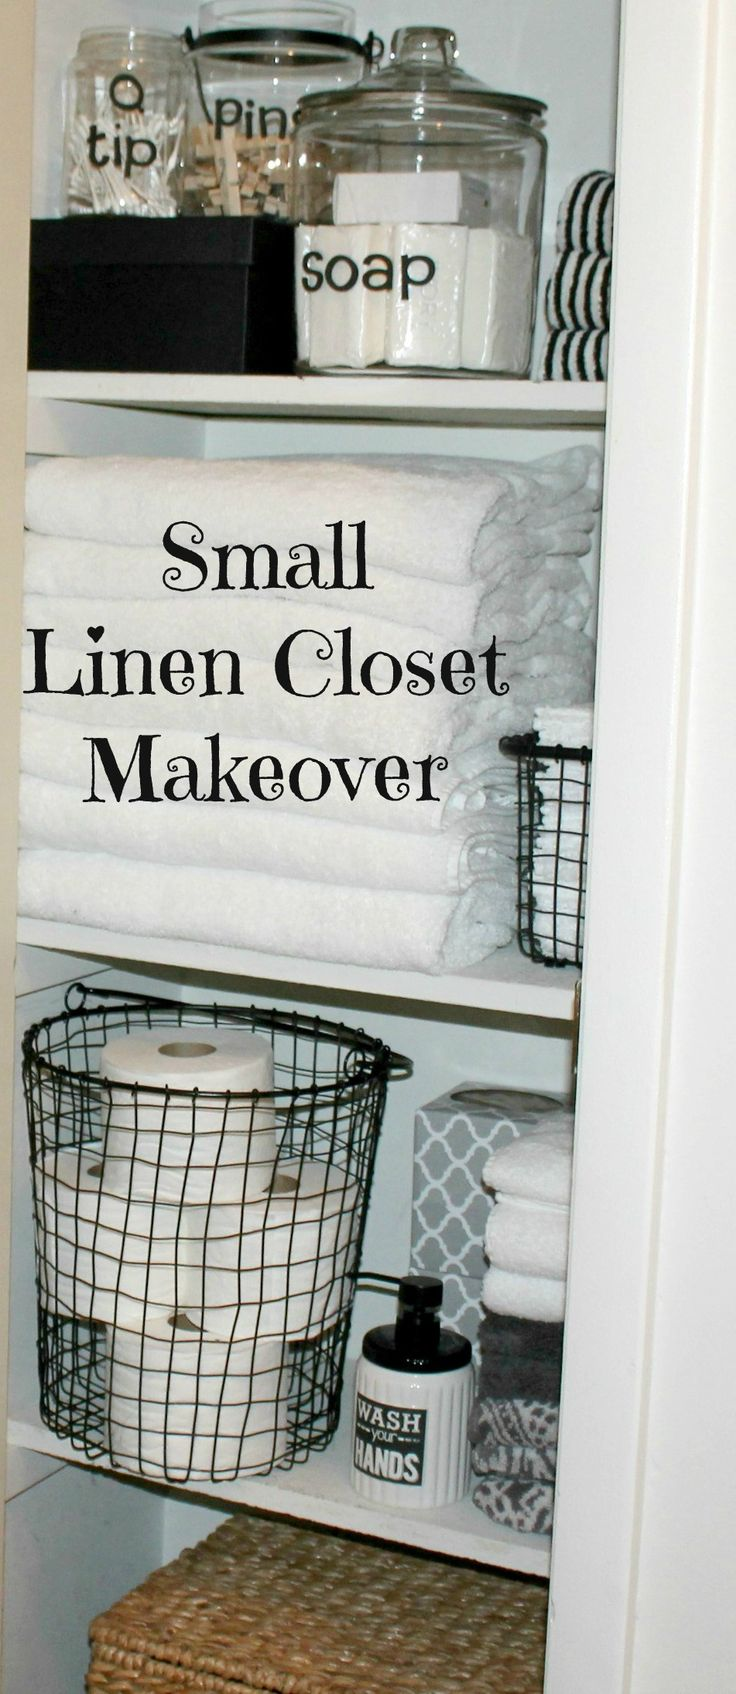 Small Linen Closet Ideas For Easy Organization